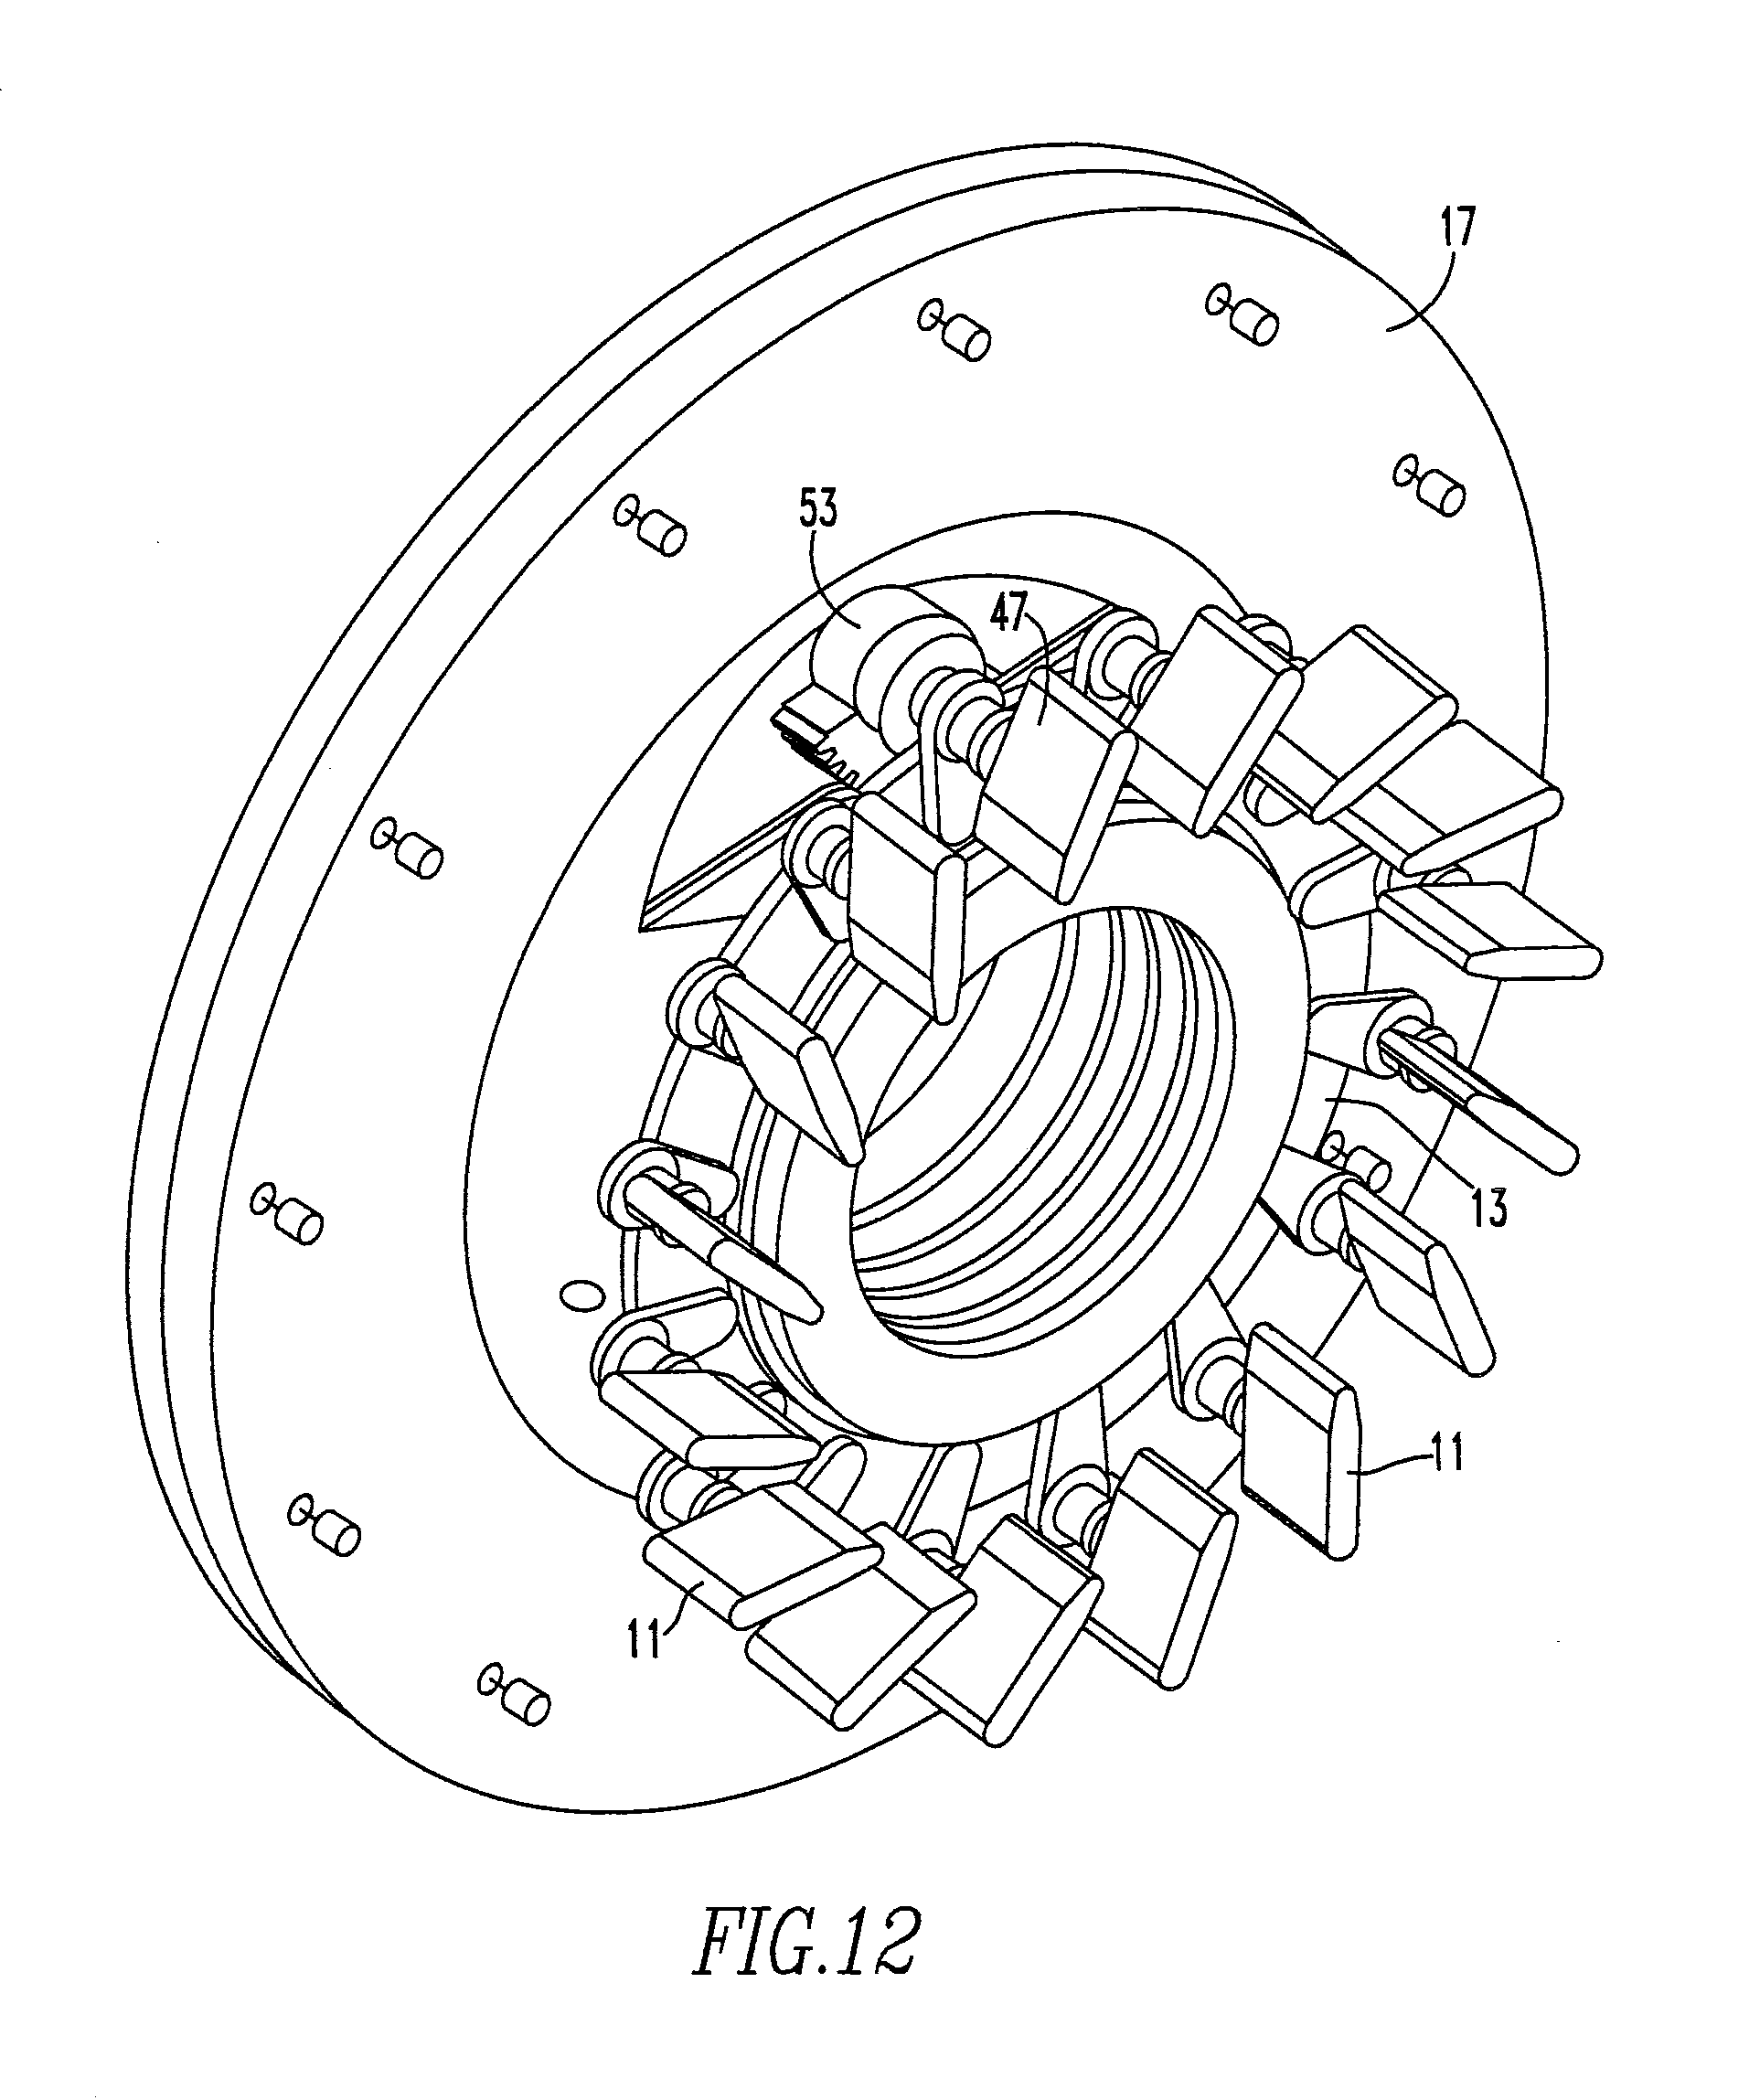 guide vanes in centrifugal compressor